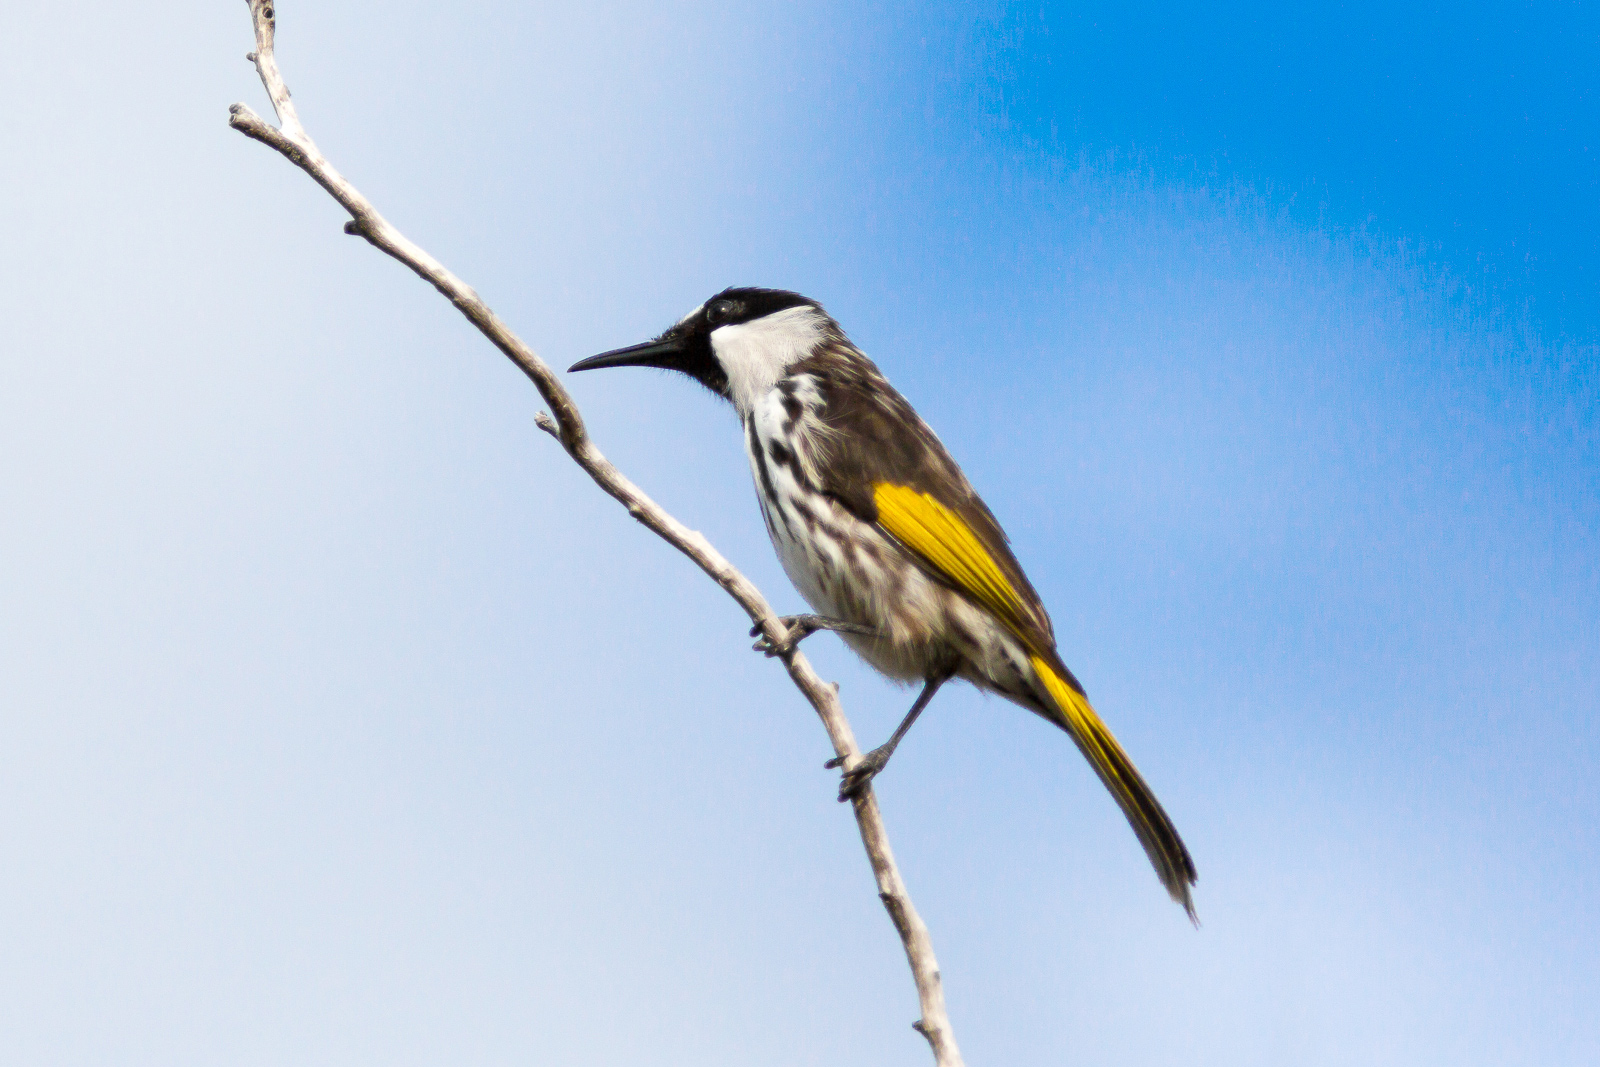 White-Cheeked Honeyeater on perch